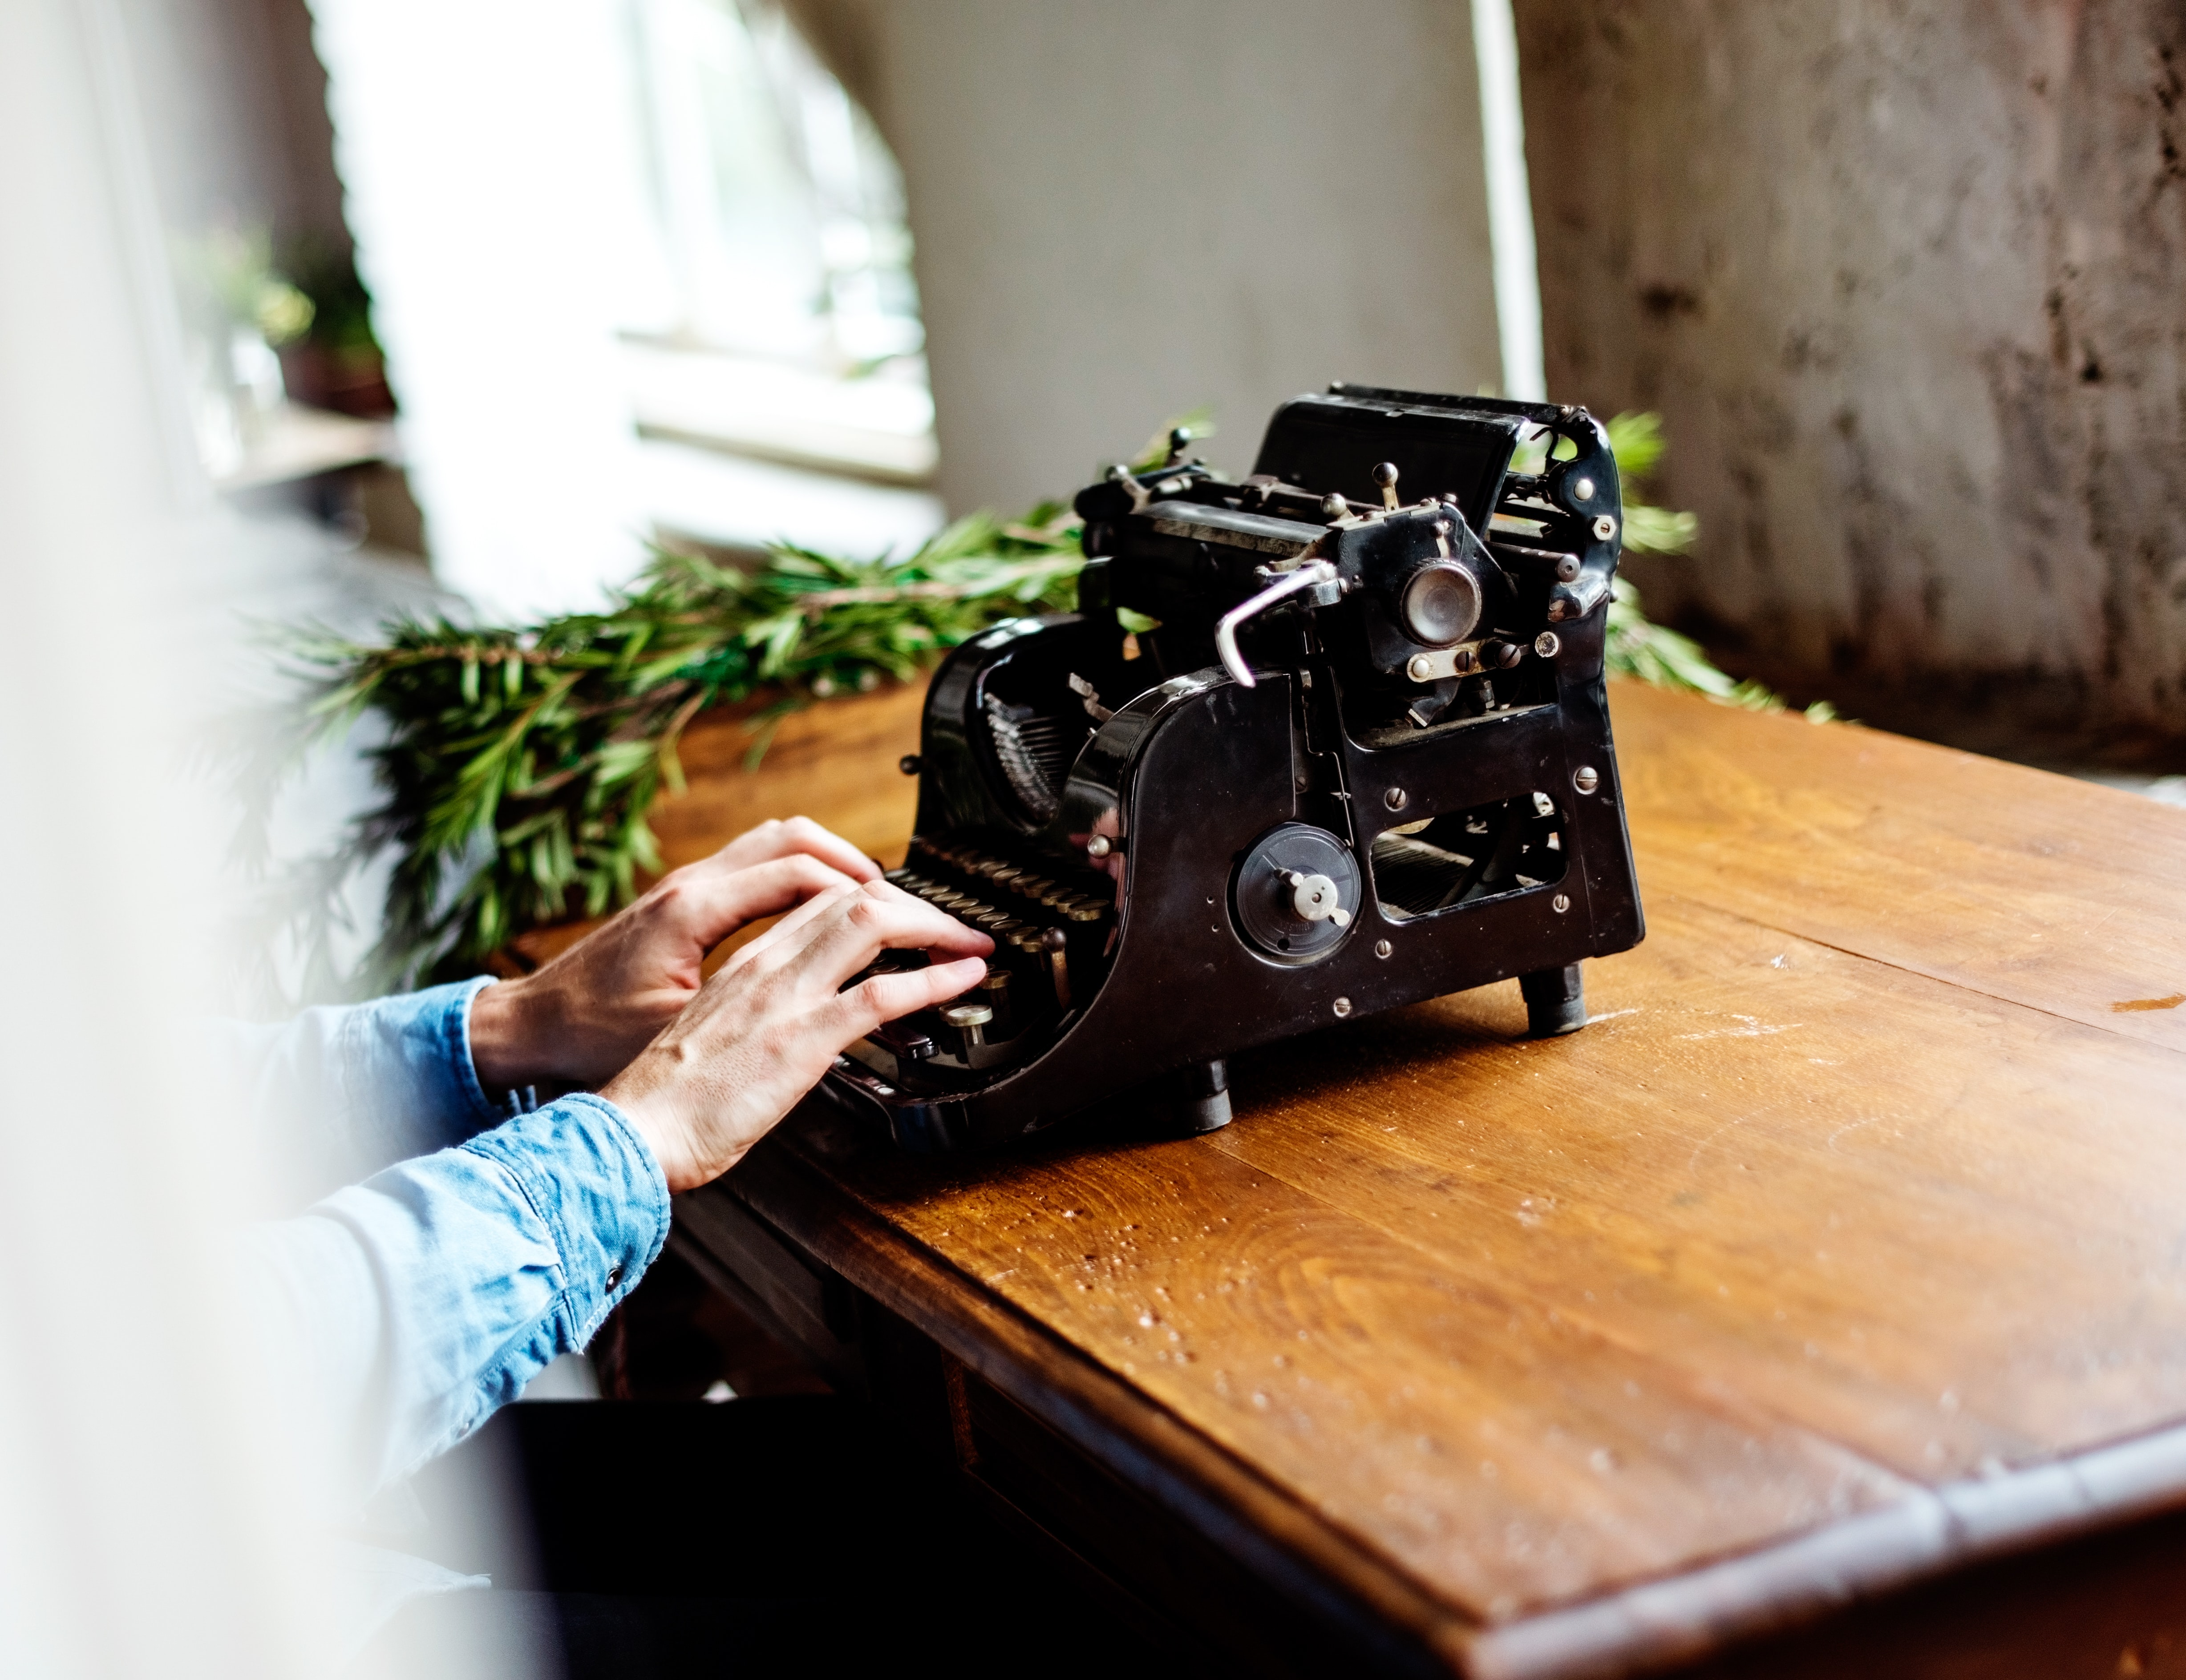 A person types on a vintage typewriter at a desk